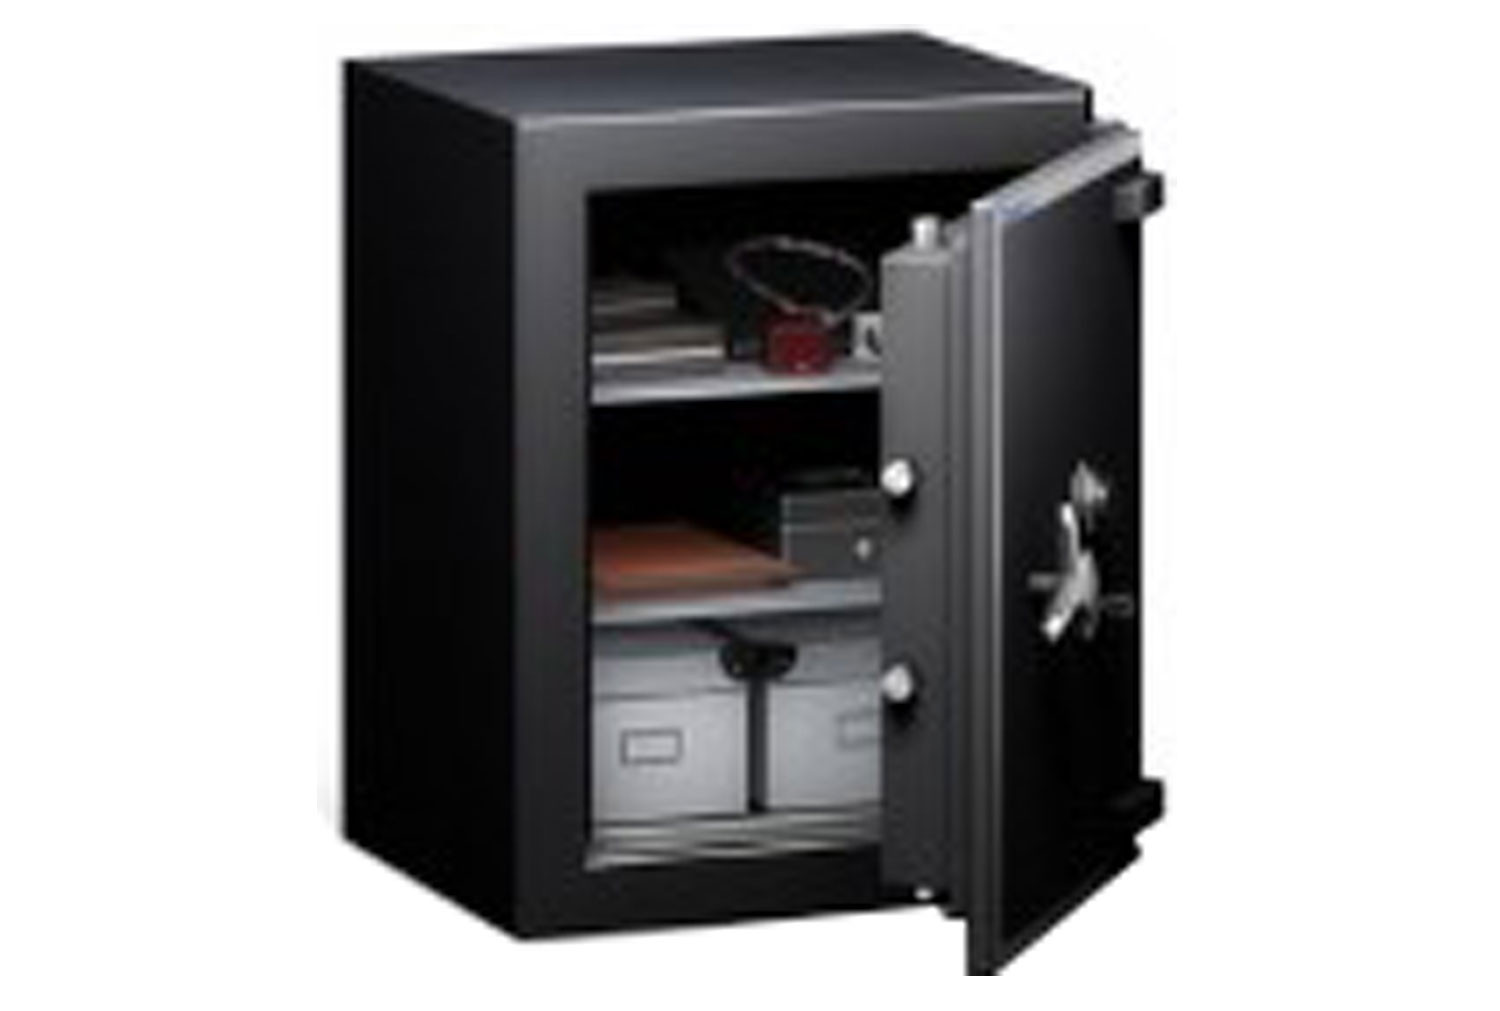 Chubbsafes Trident Grade 4 170 Fire Resistant Safe With Dual Key Lock (168ltrs)